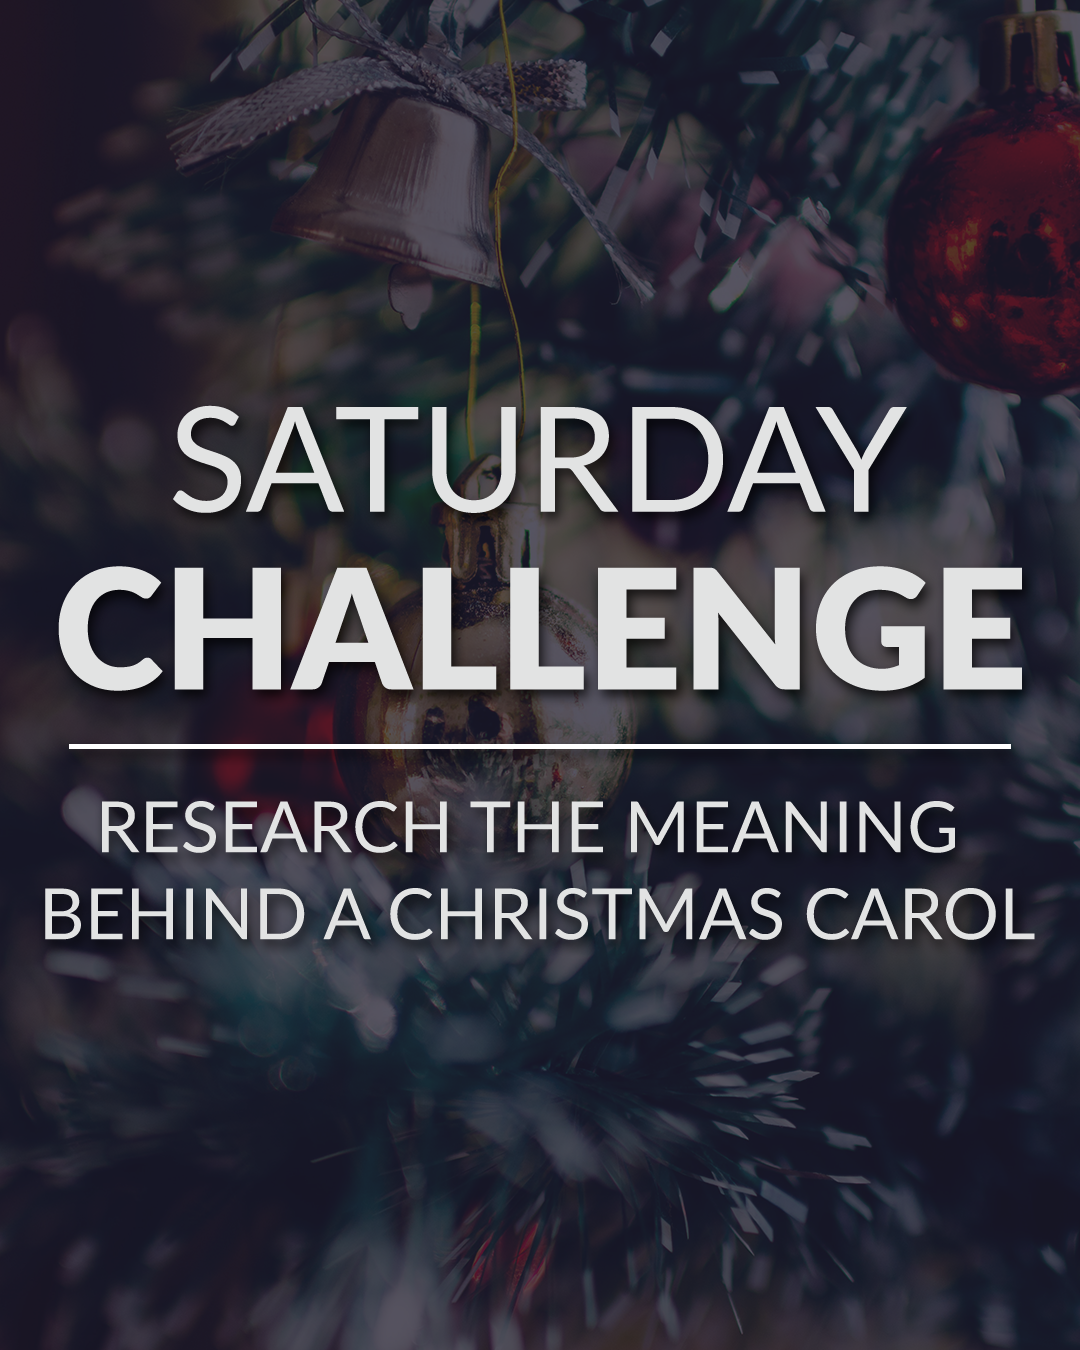 Christmas Carol Meaning.Saturday Challenge Research The Meaning Behind A Christmas Carol